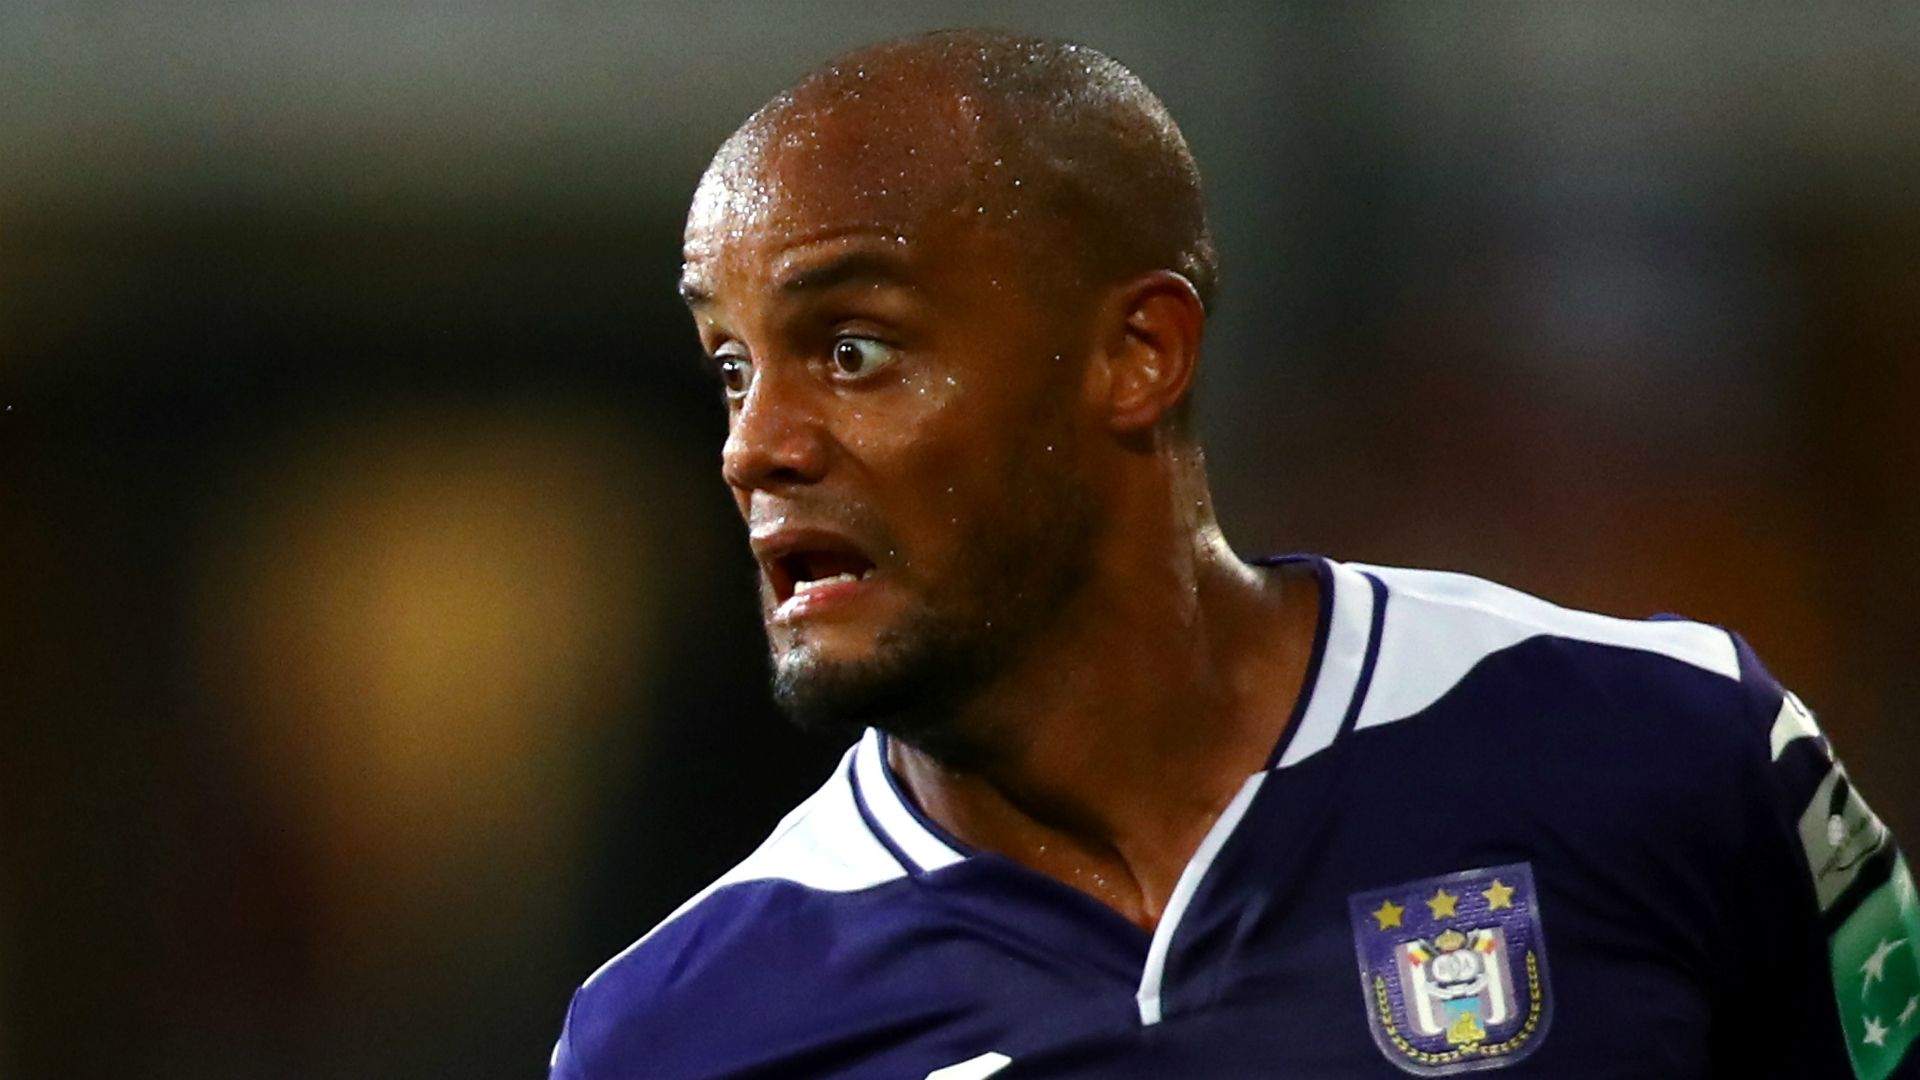 Kompany injured as Anderlecht lose again